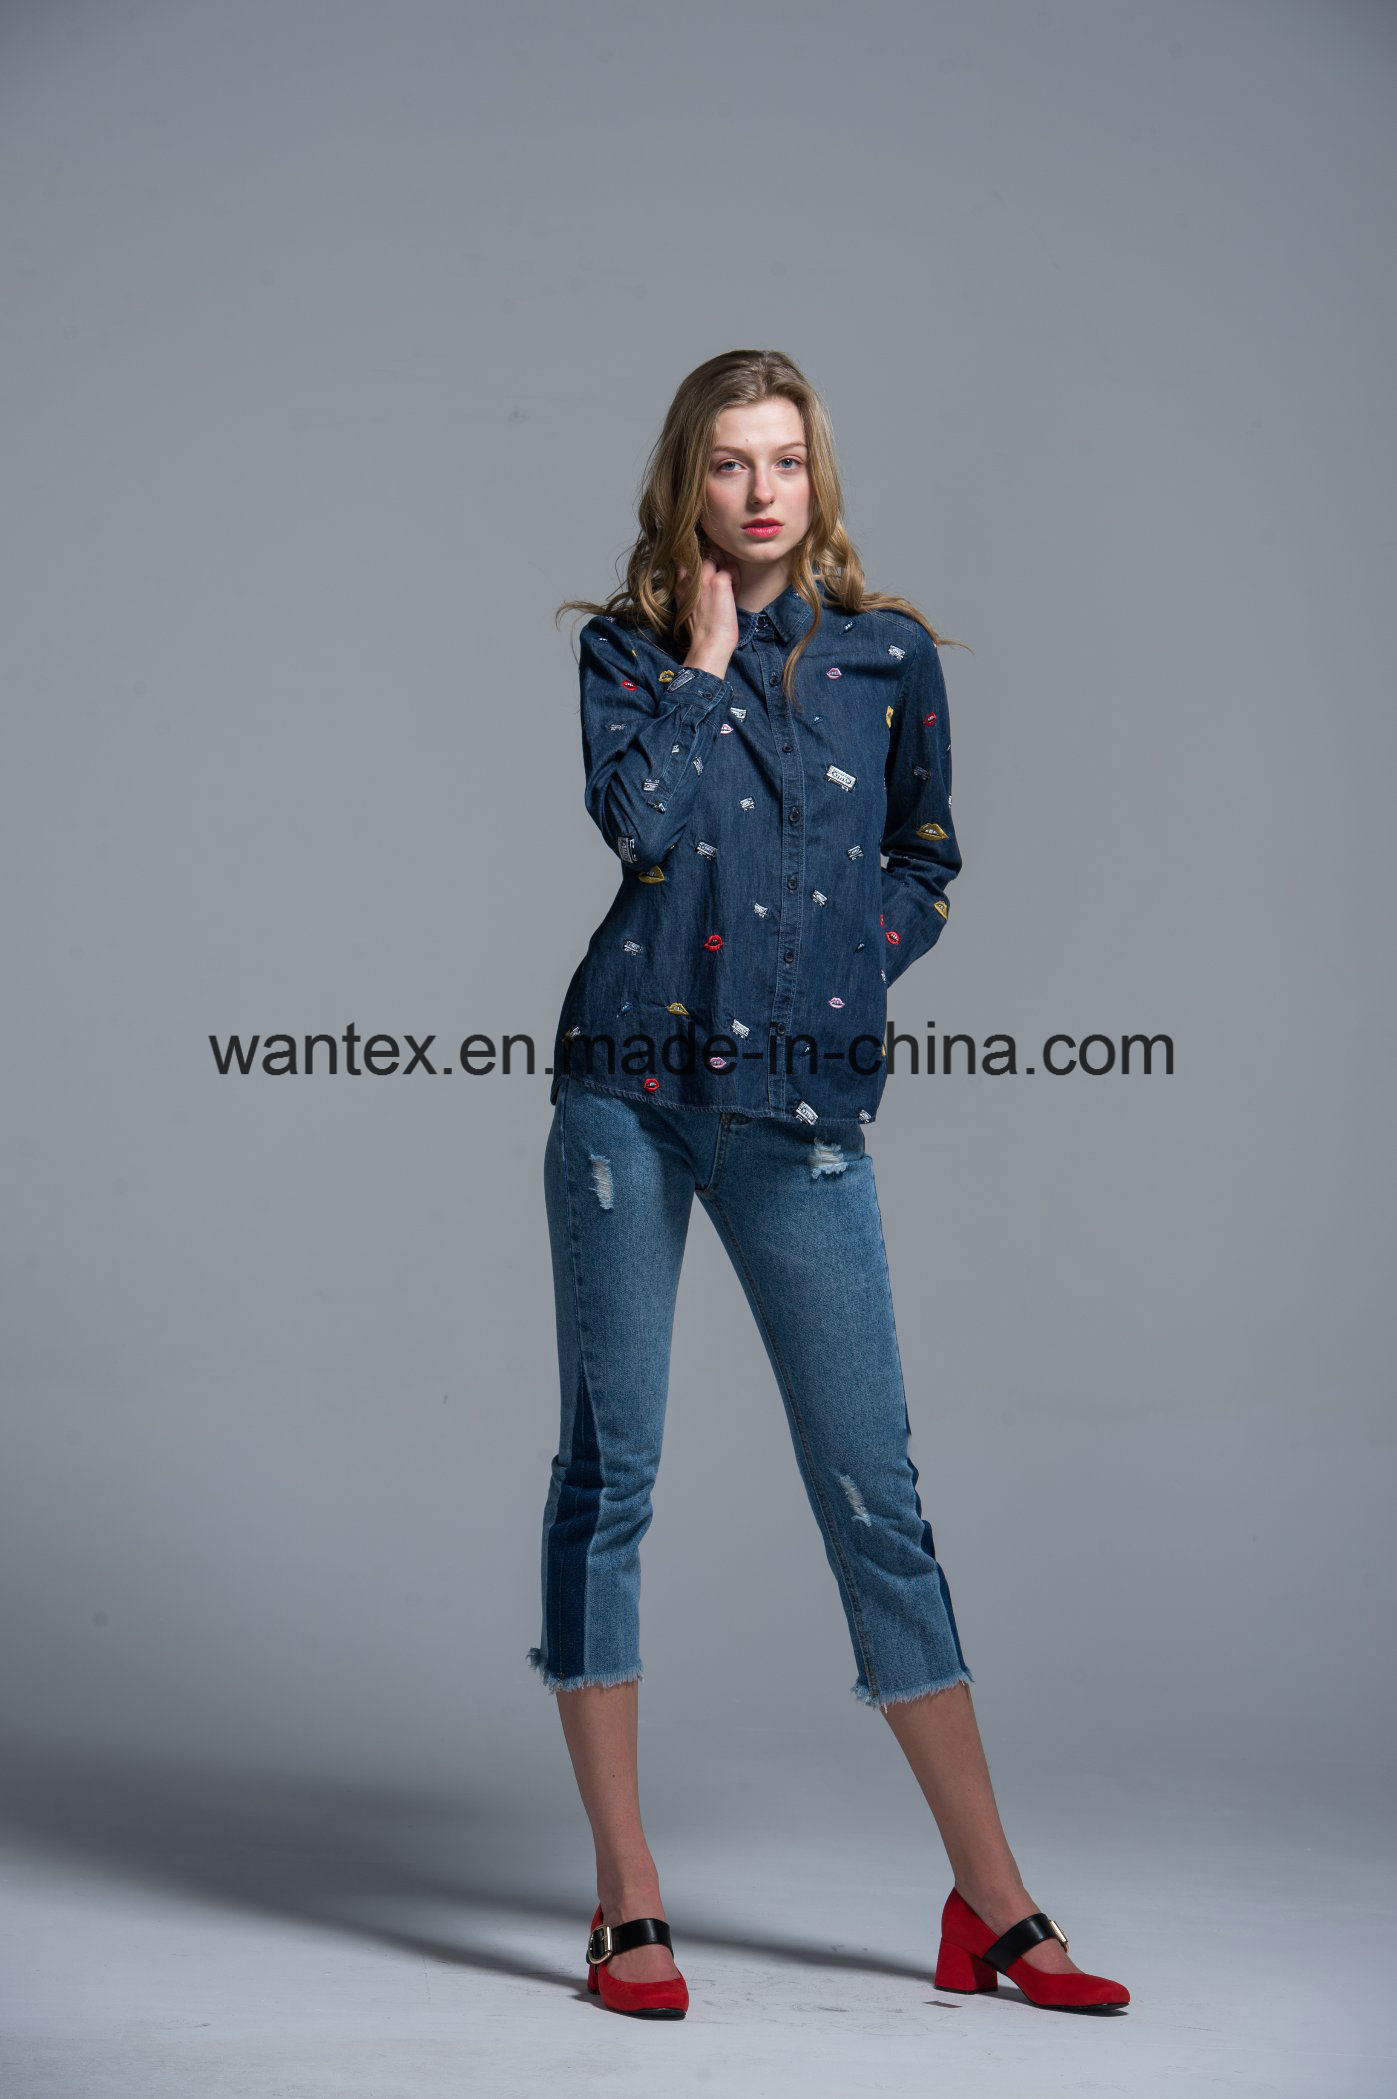 Ladies Blouse 100% Cotton Fashion Shirt Fashion Top Autumn Spring Jean